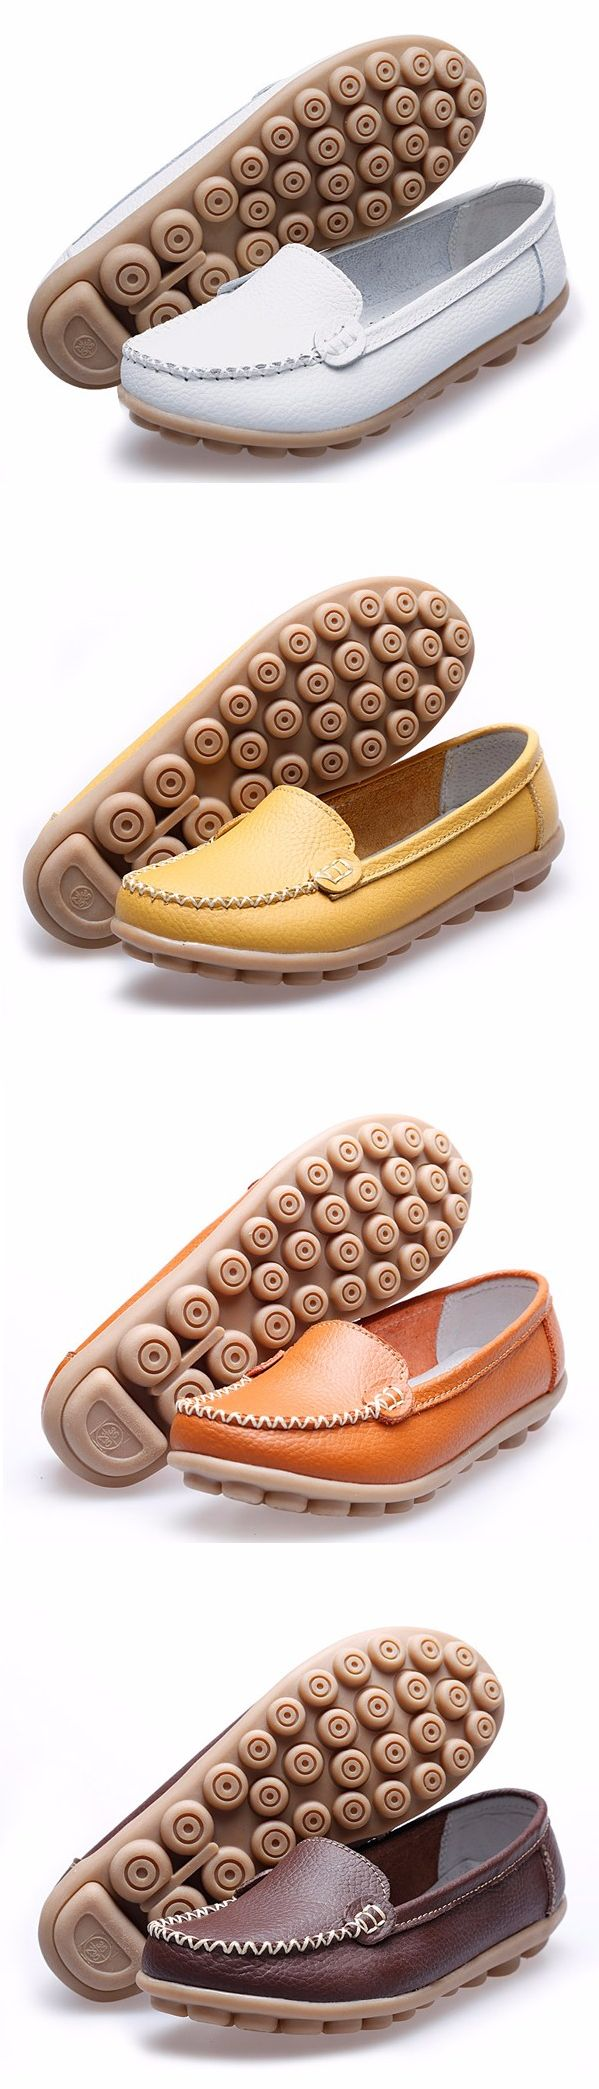 US$15.56 Casaul Soft Sole Pure Color Slip On Flat Shoes Loafers https://twitter.com/ecosmcognm/status/903781951131140096